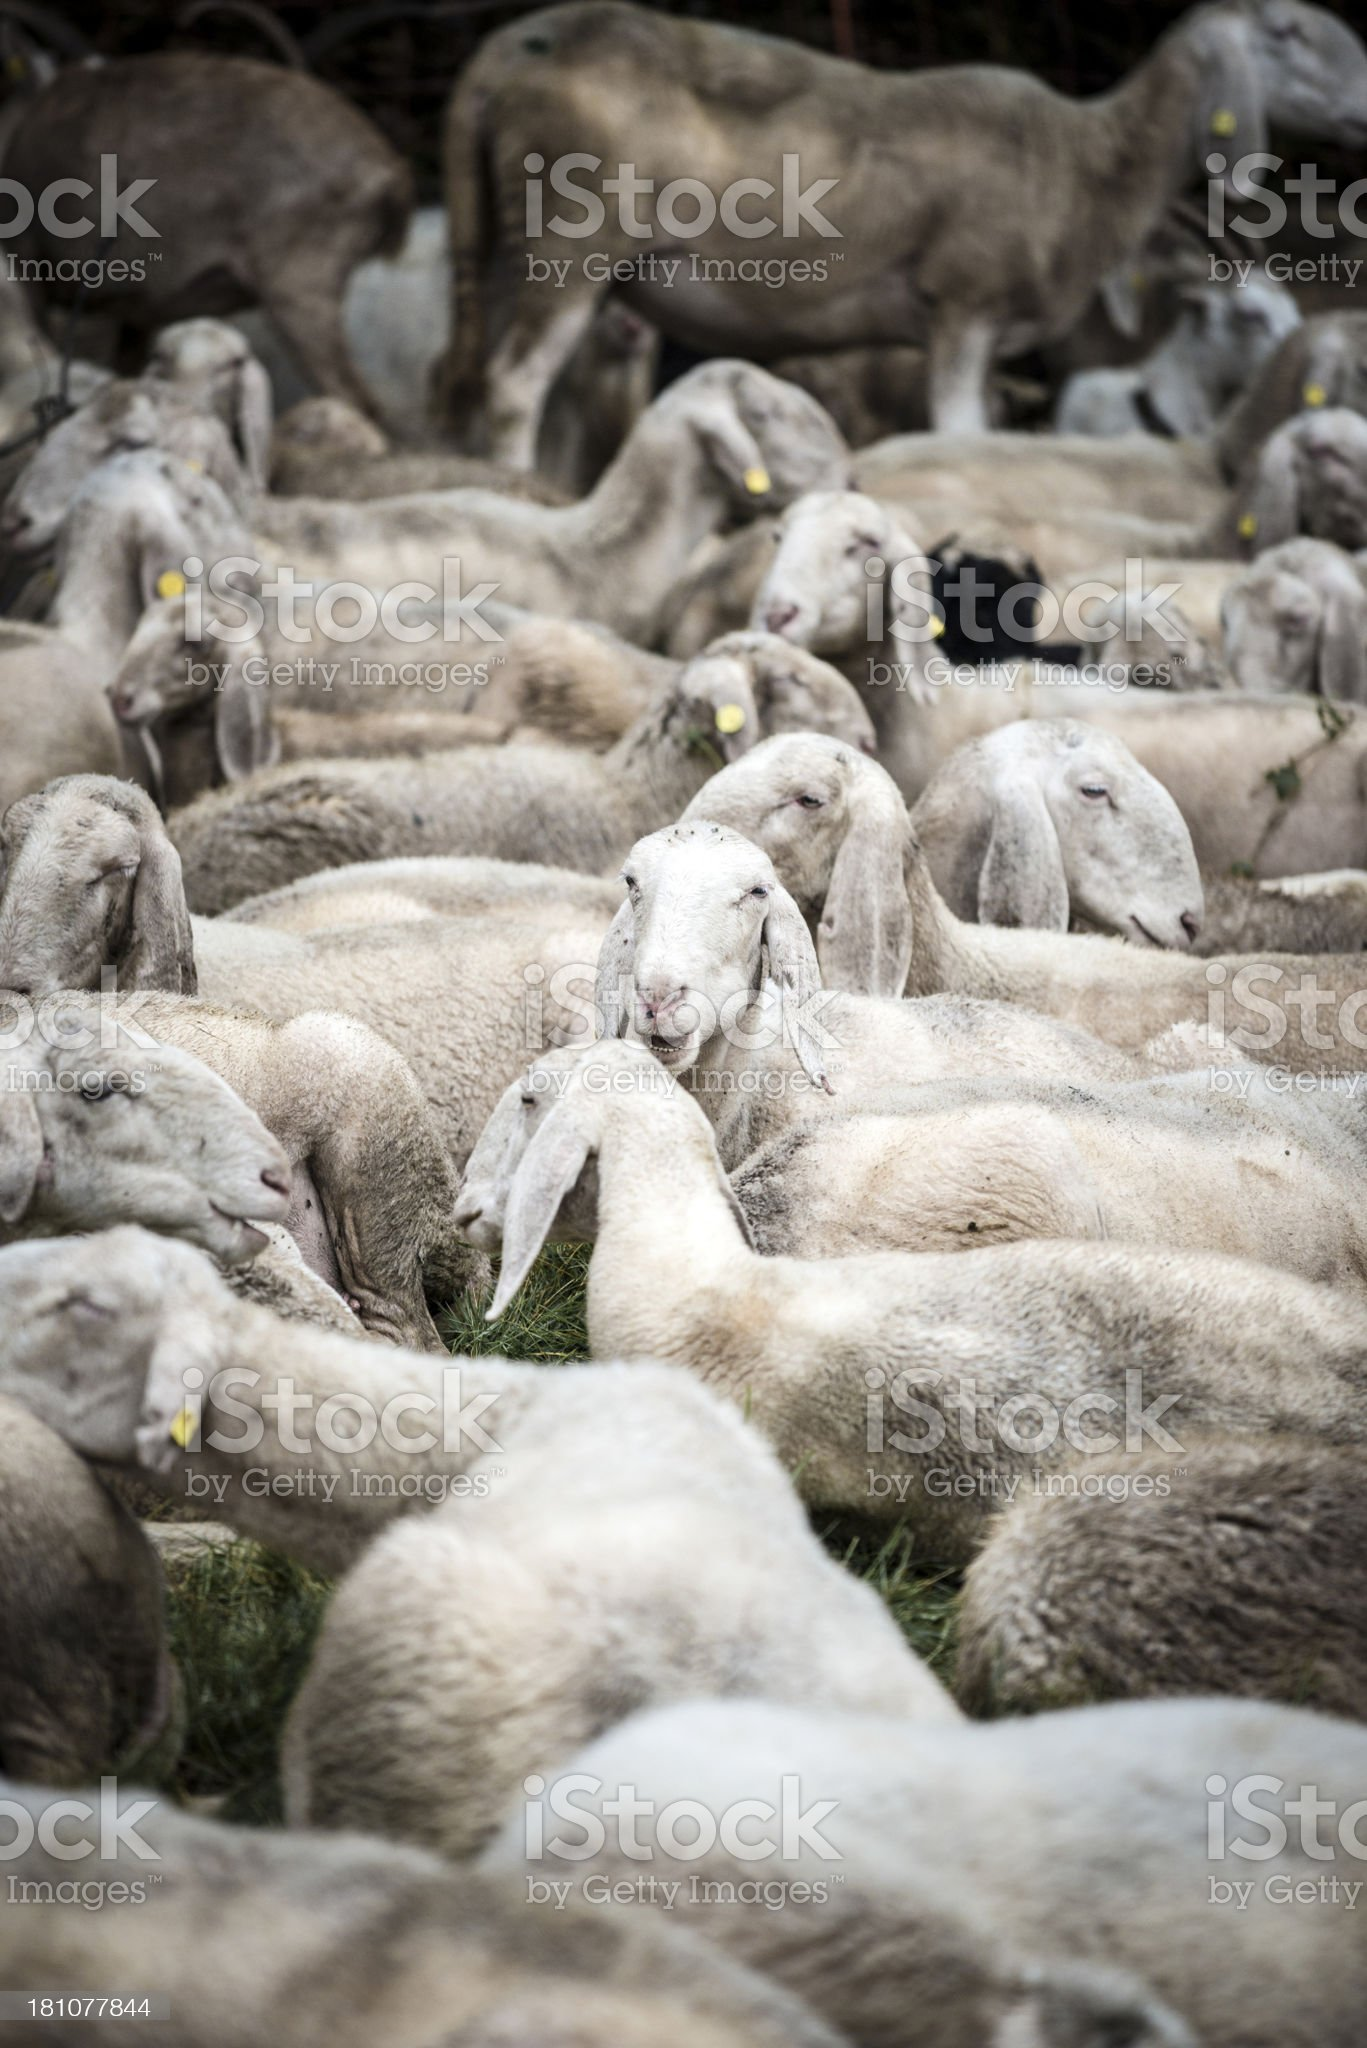 Flock of sheep and goats royalty-free stock photo